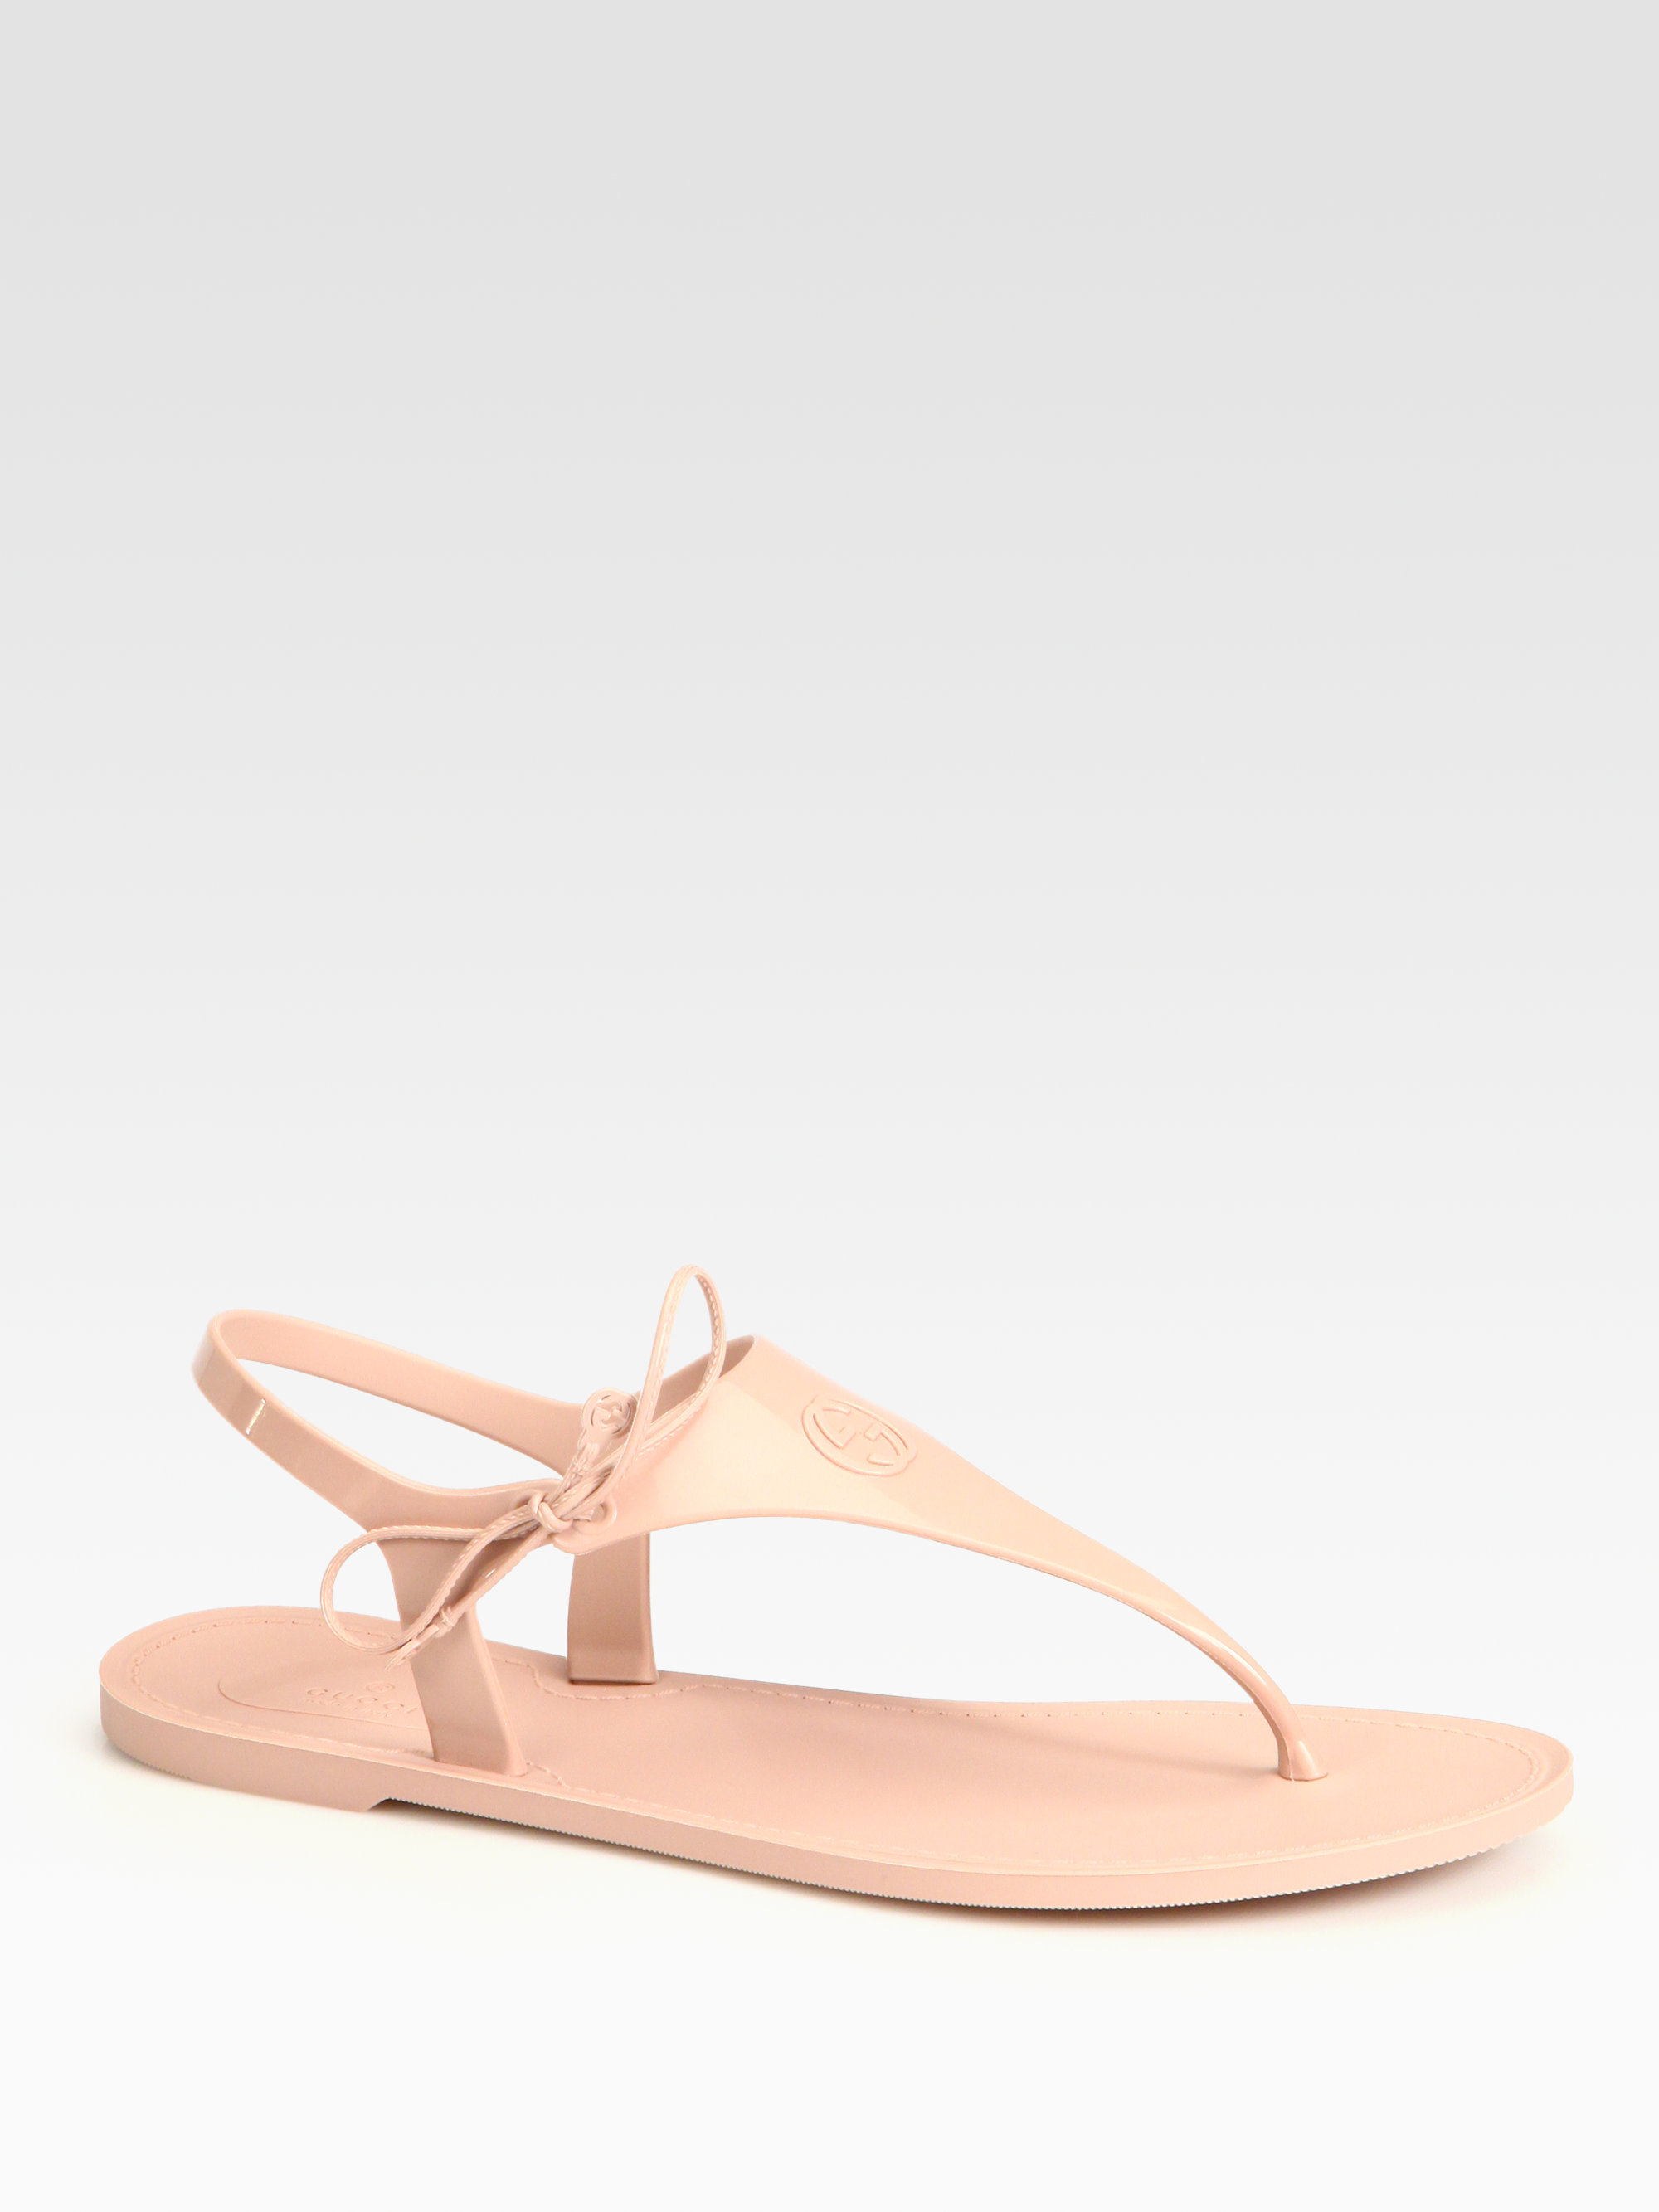 919a261ddff8 Lyst - Gucci Katina Rubber Thong Sandals in Natural